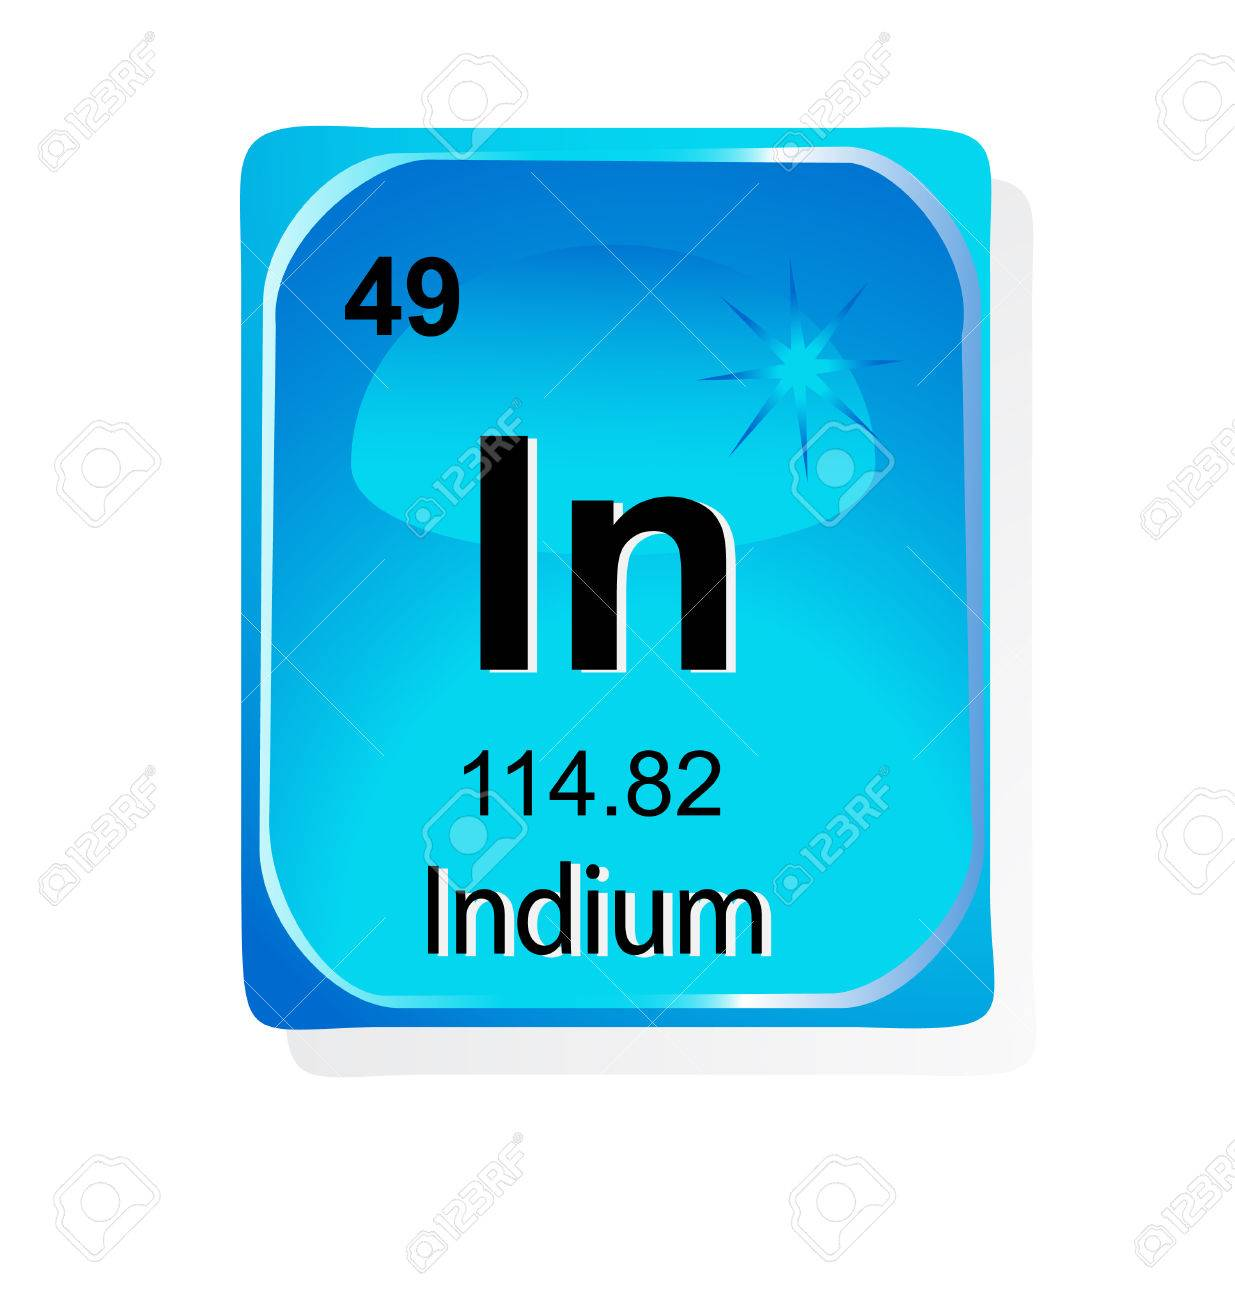 Indium chemical element with atomic number symbol and weight indium chemical element with atomic number symbol and weight stock vector 24509808 biocorpaavc Images